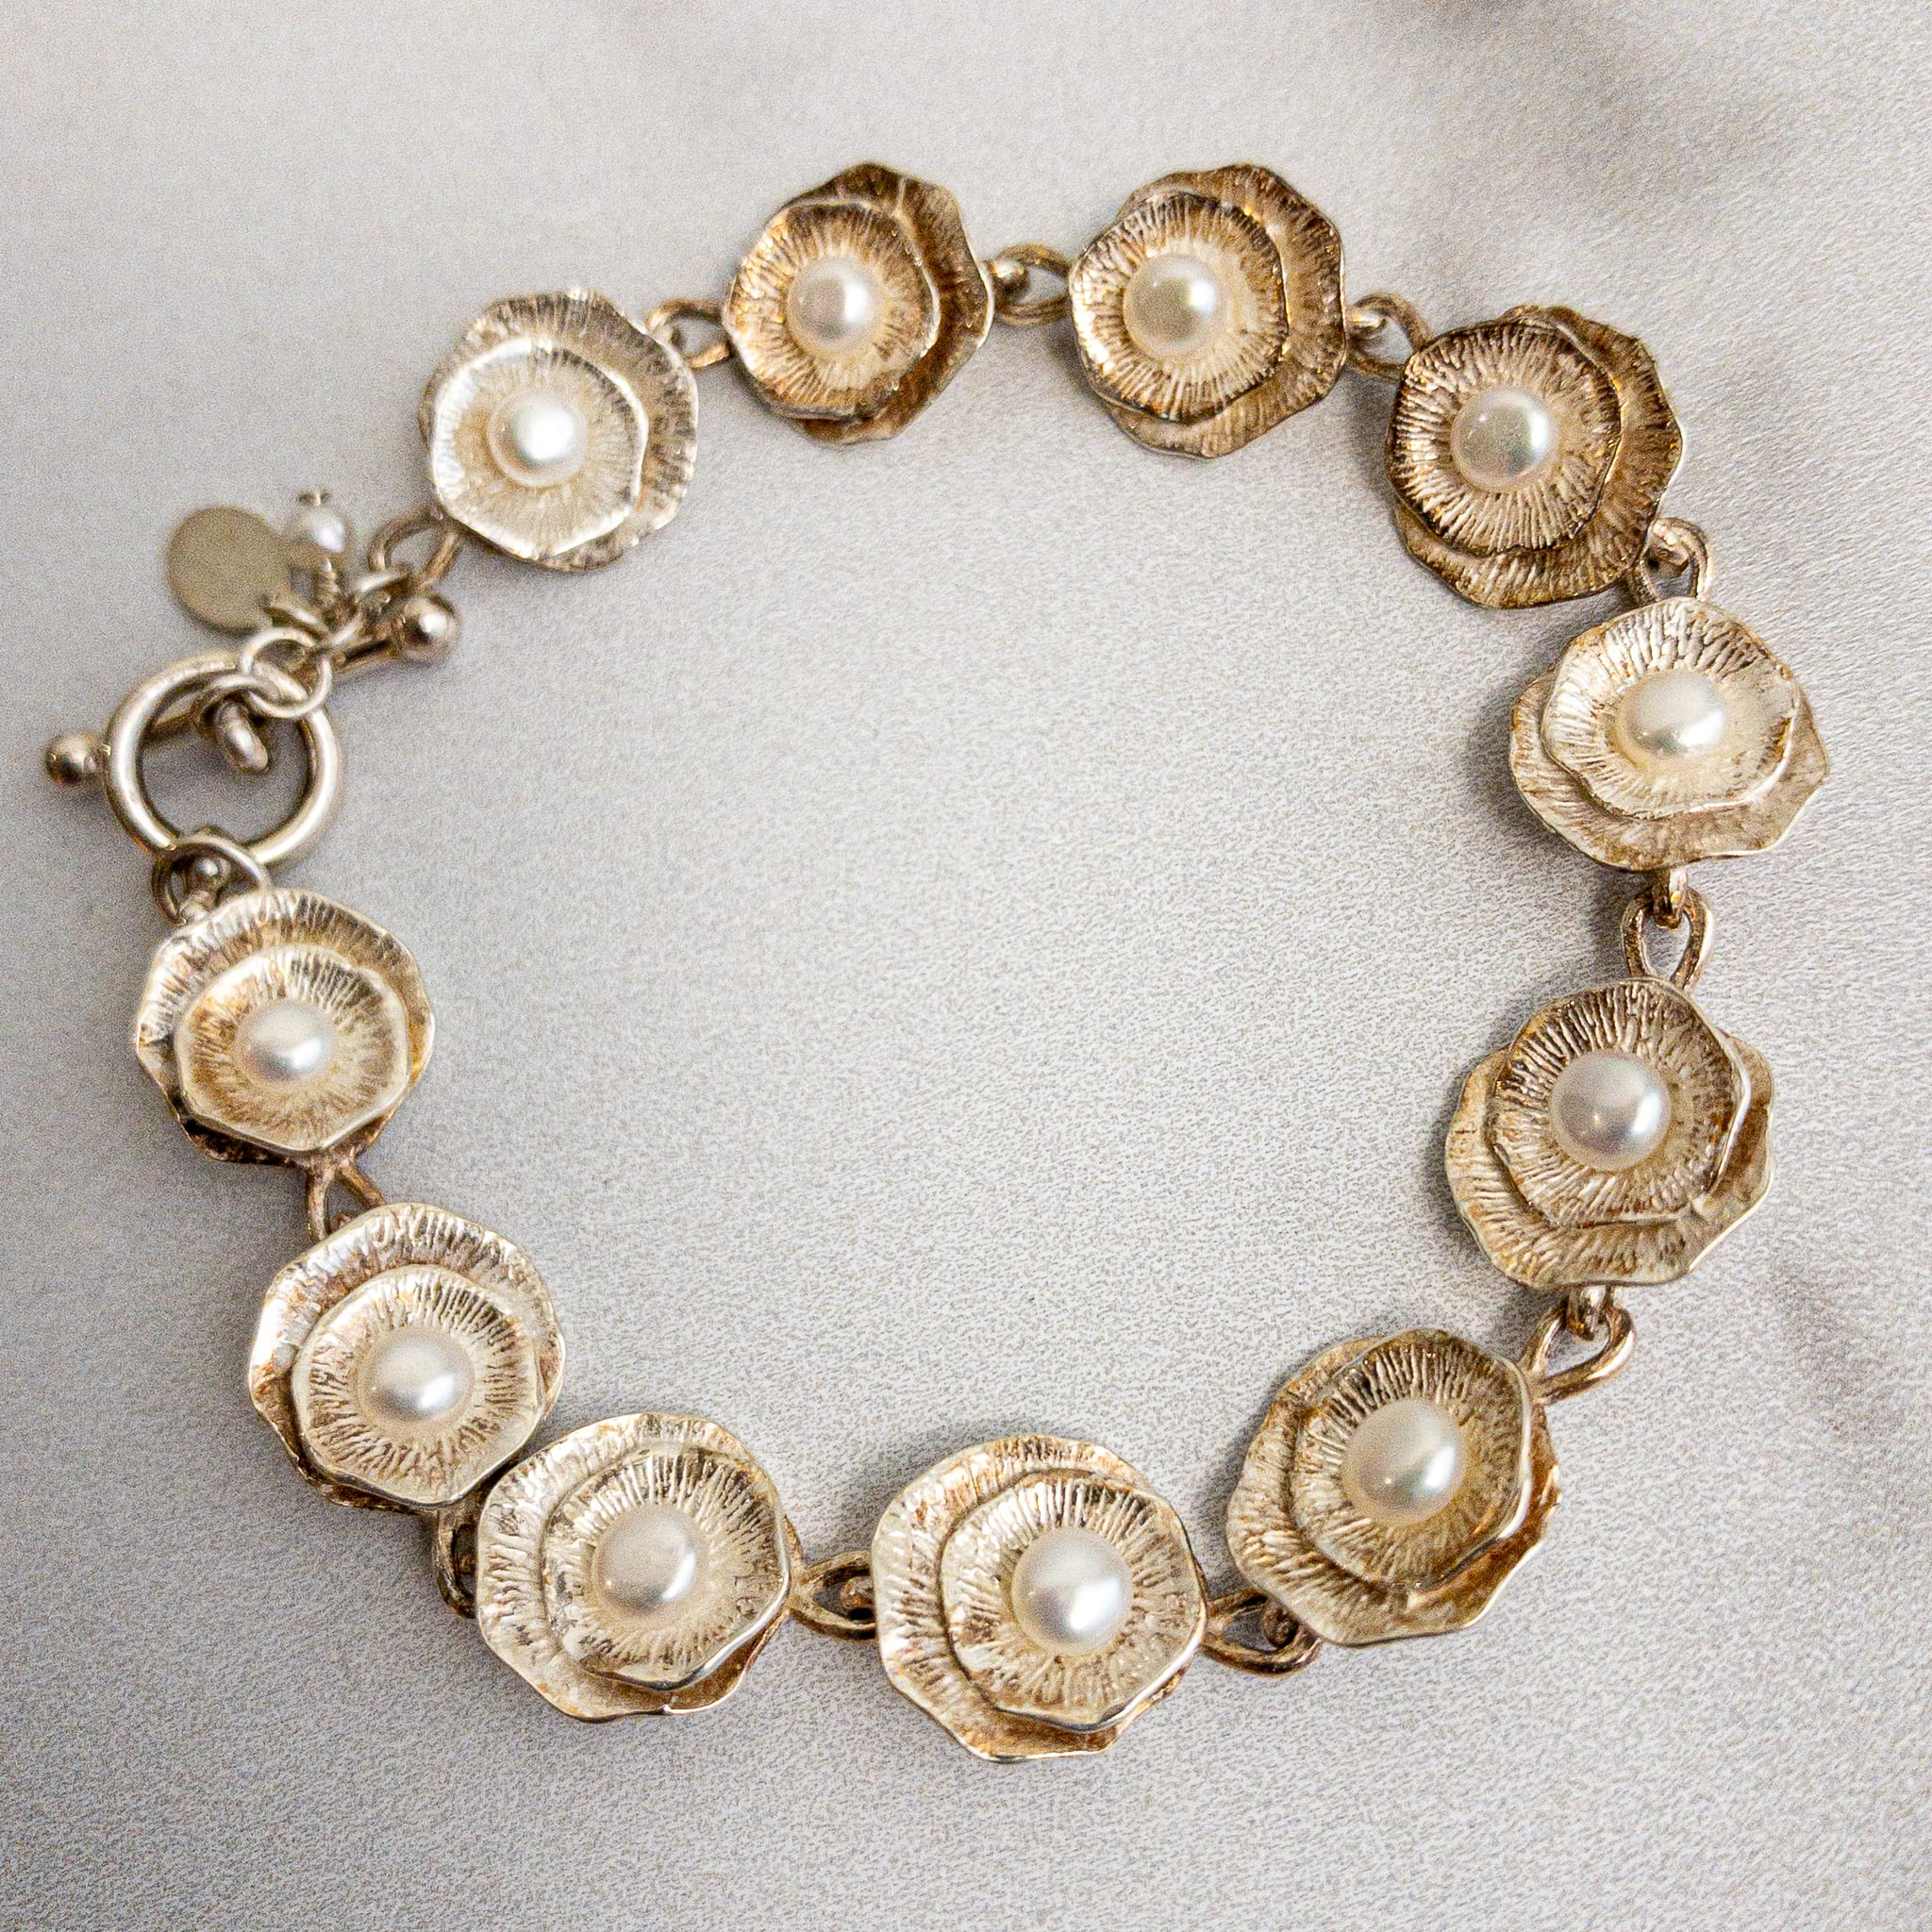 Lily Pad Bracelet with White Freshwater Pearl - Edgecomb Potters